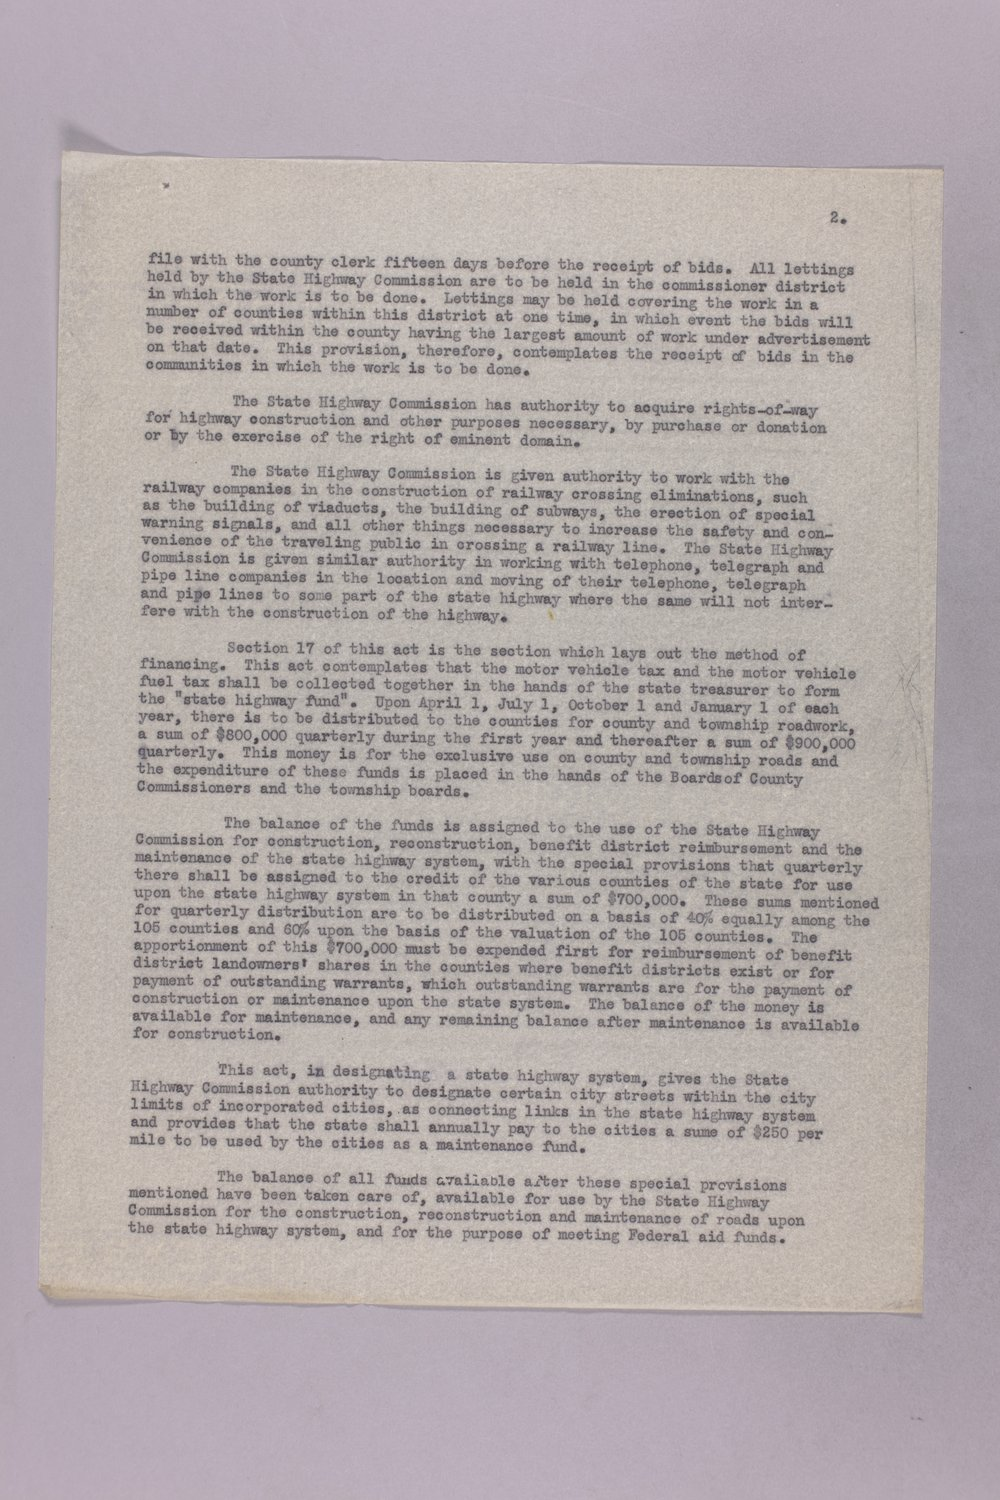 Governor Clyde M. Reed correspondence, Highway Department - 10